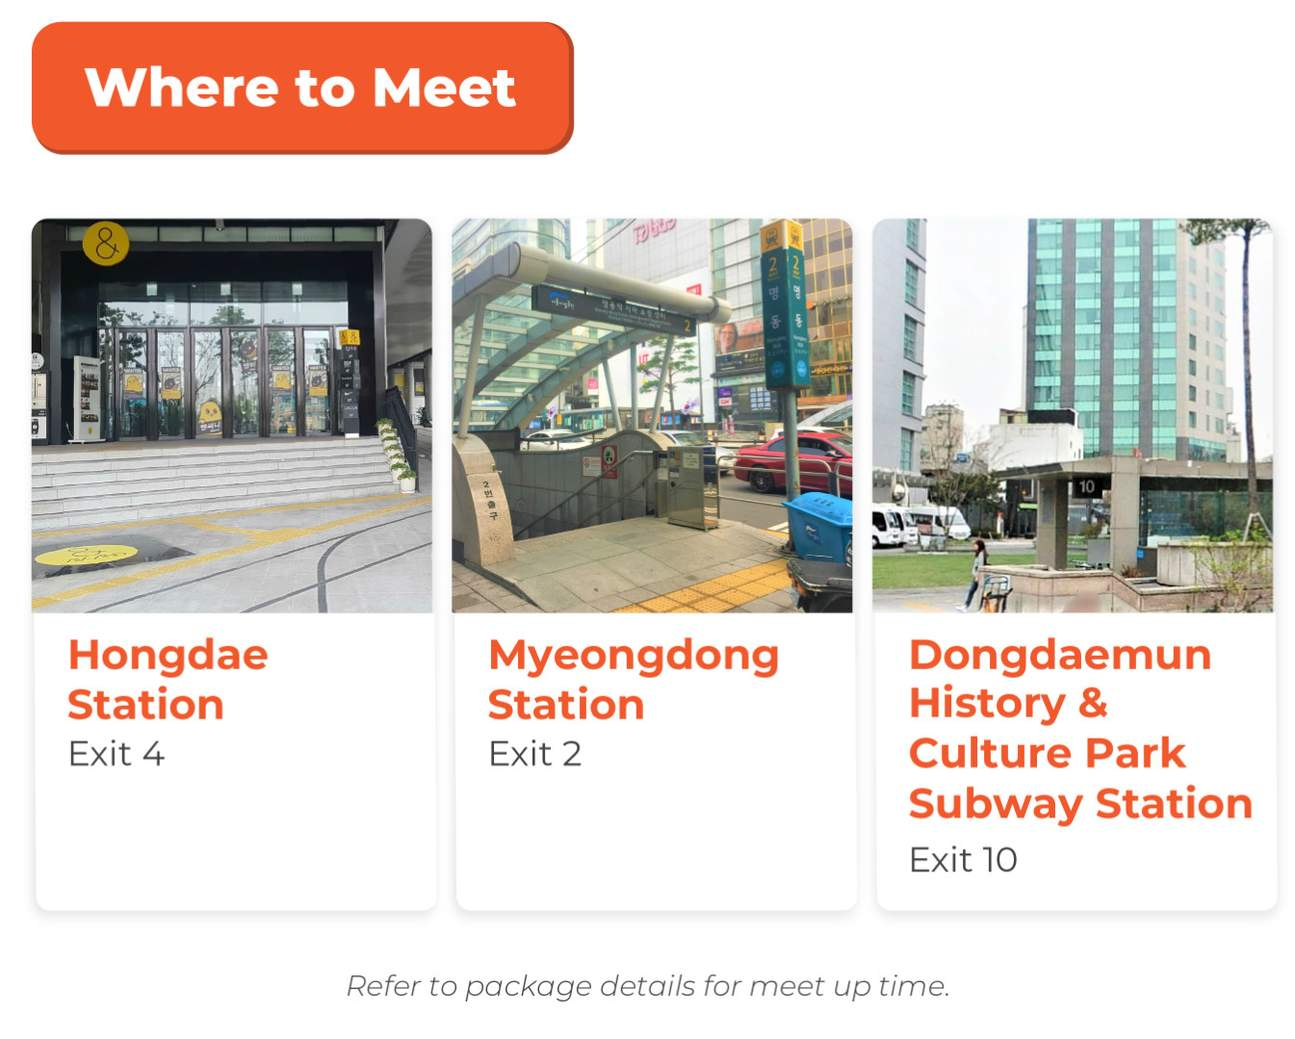 meet up location infographic